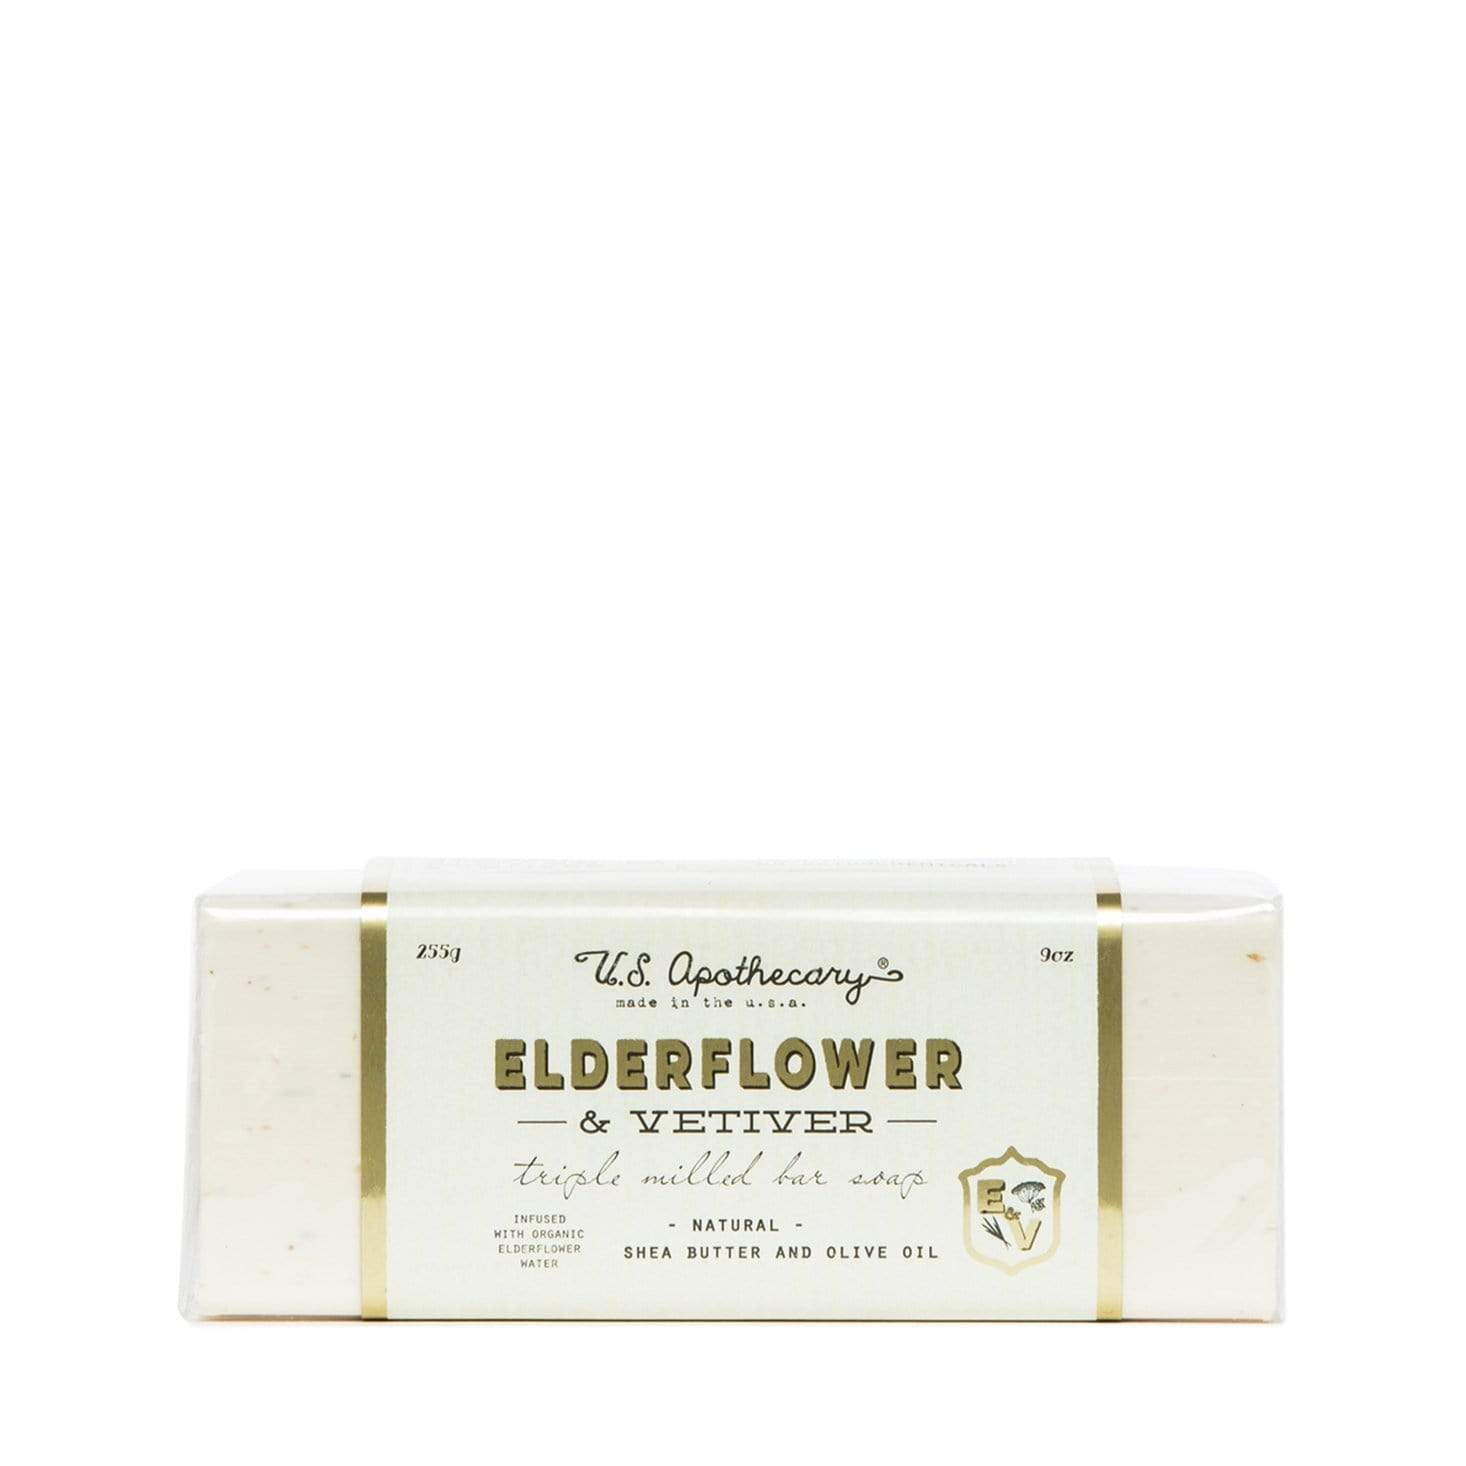 U.S. Apothecary Elderflower Soap